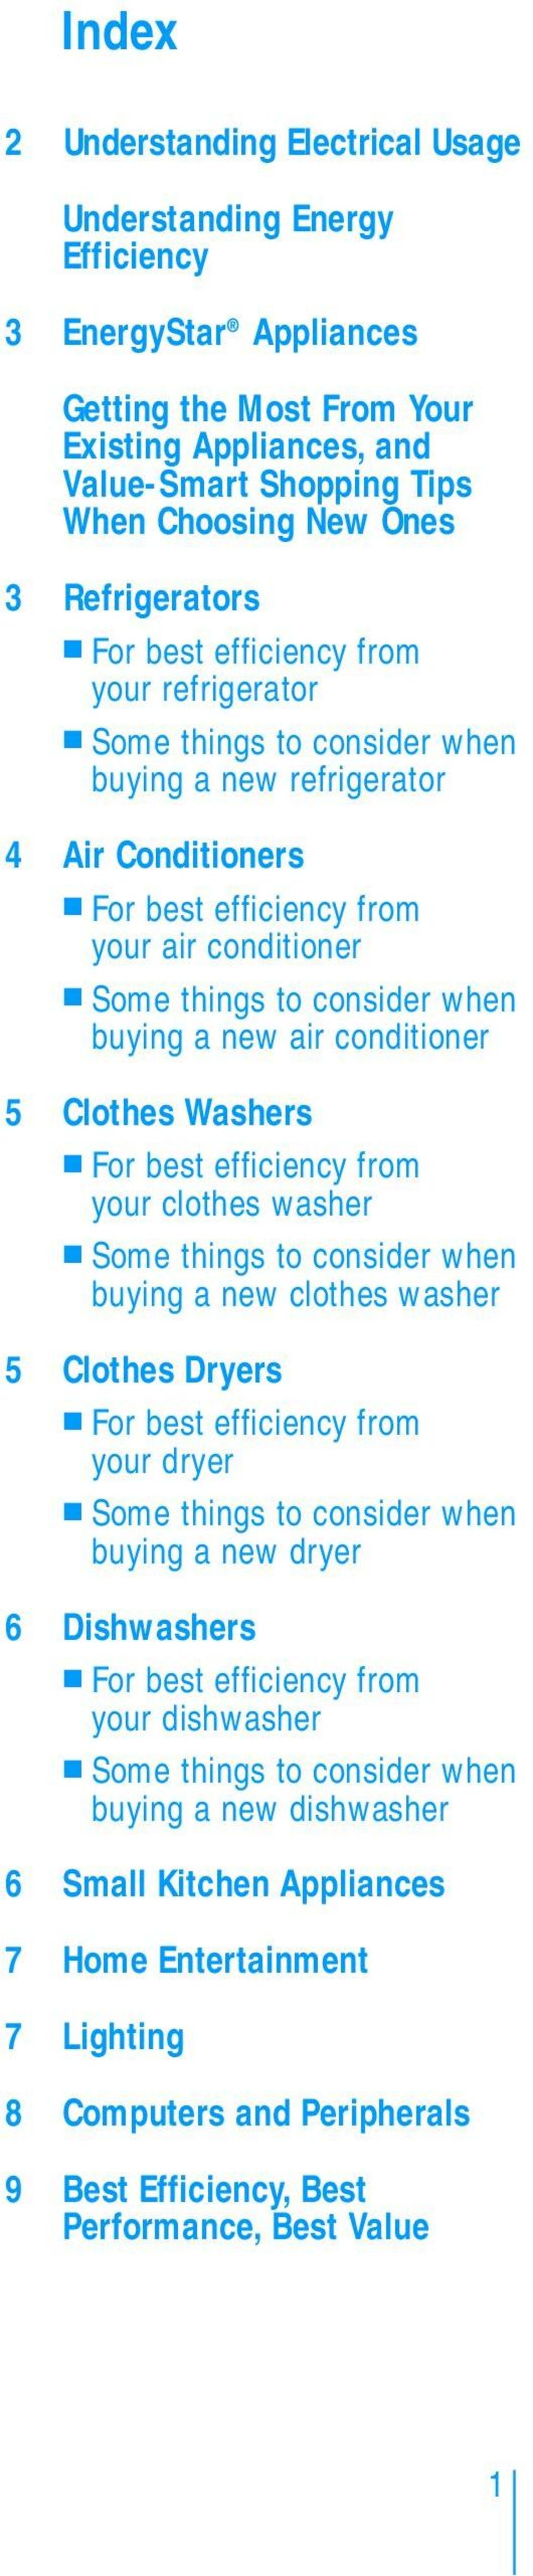 consider when buying a new air conditioner 5 Clothes Washers For best efficiency from your clothes washer Some things to consider when buying a new clothes washer 5 Clothes Dryers For best efficiency